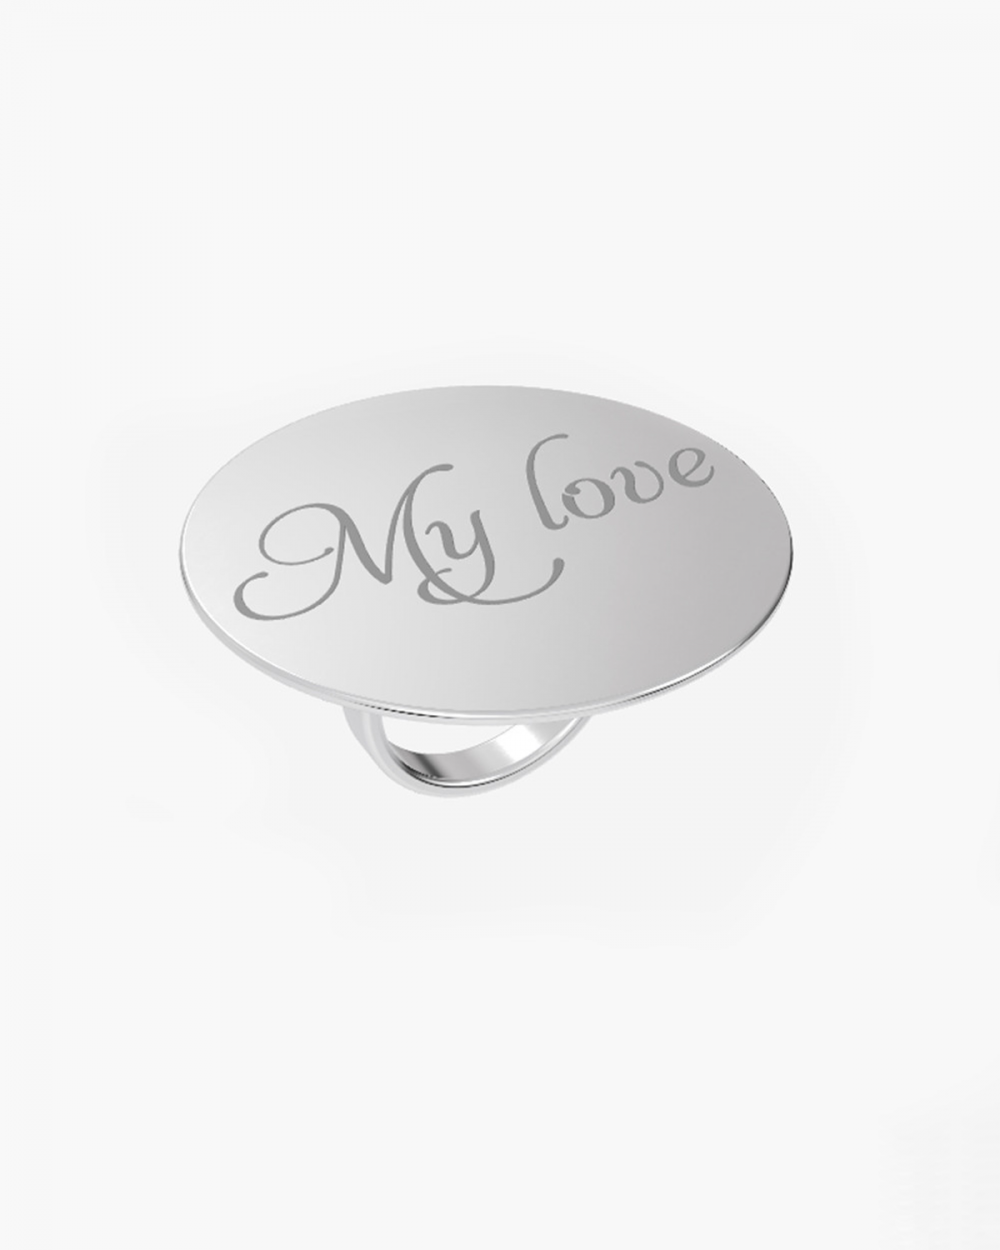 MYNOVE25 BIG ROUND PLATE RING 40 MM NOVE25